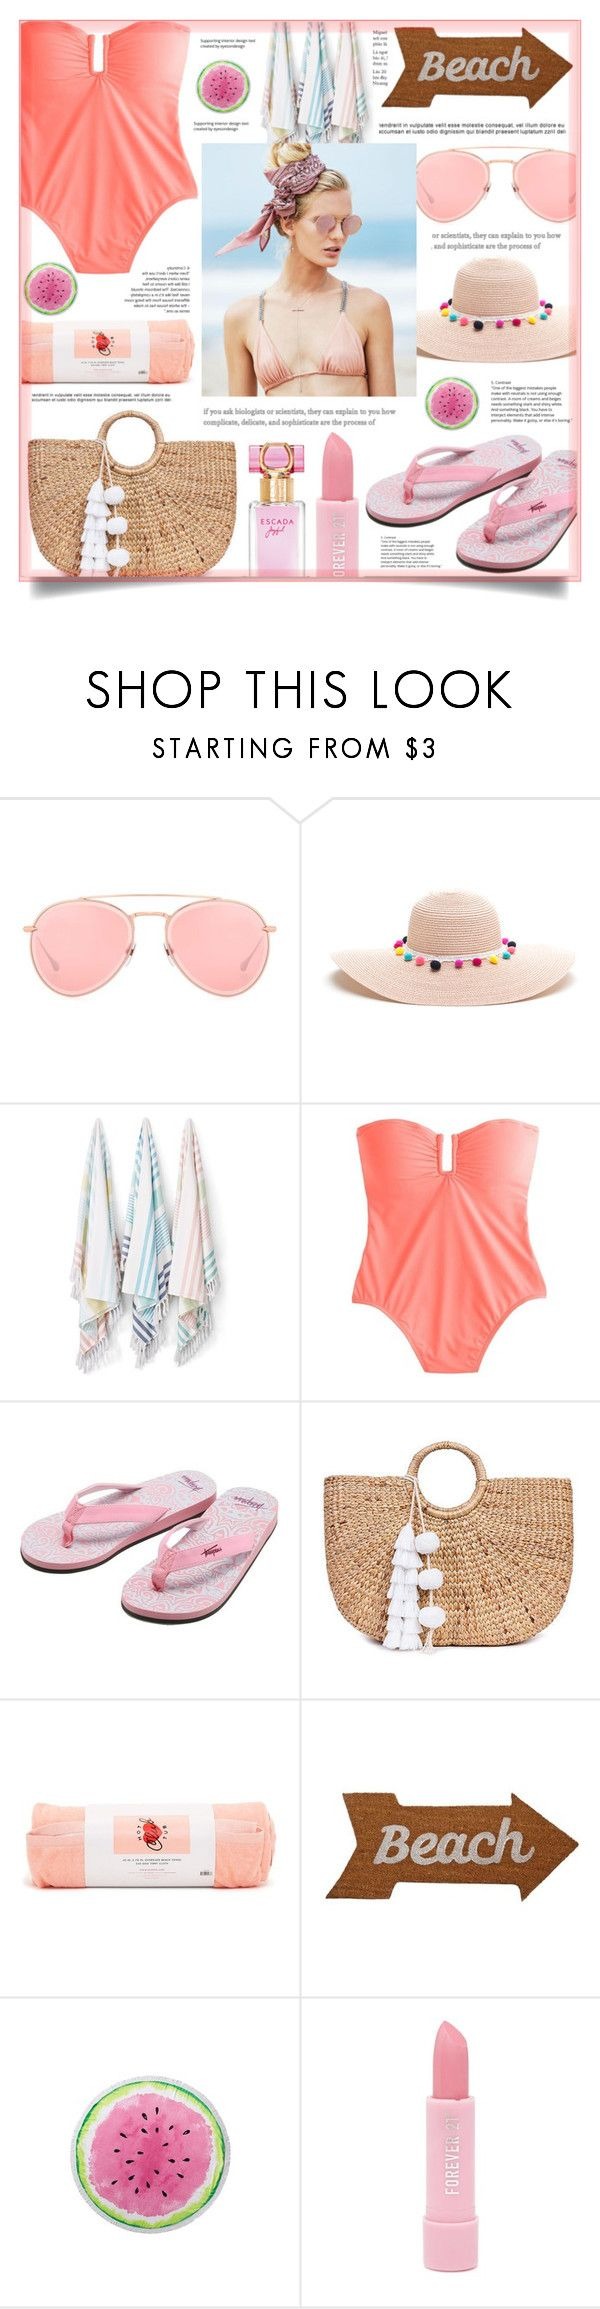 """""""Swimsuit"""" by ouat-lover-28 ❤ liked on Polyvore featuring Dita, Kassatex, J.Crew, Beach Riot, Trespass, JADE TRIBE, ban.do, Mud Pie, Forever 21 and polyvoreset"""